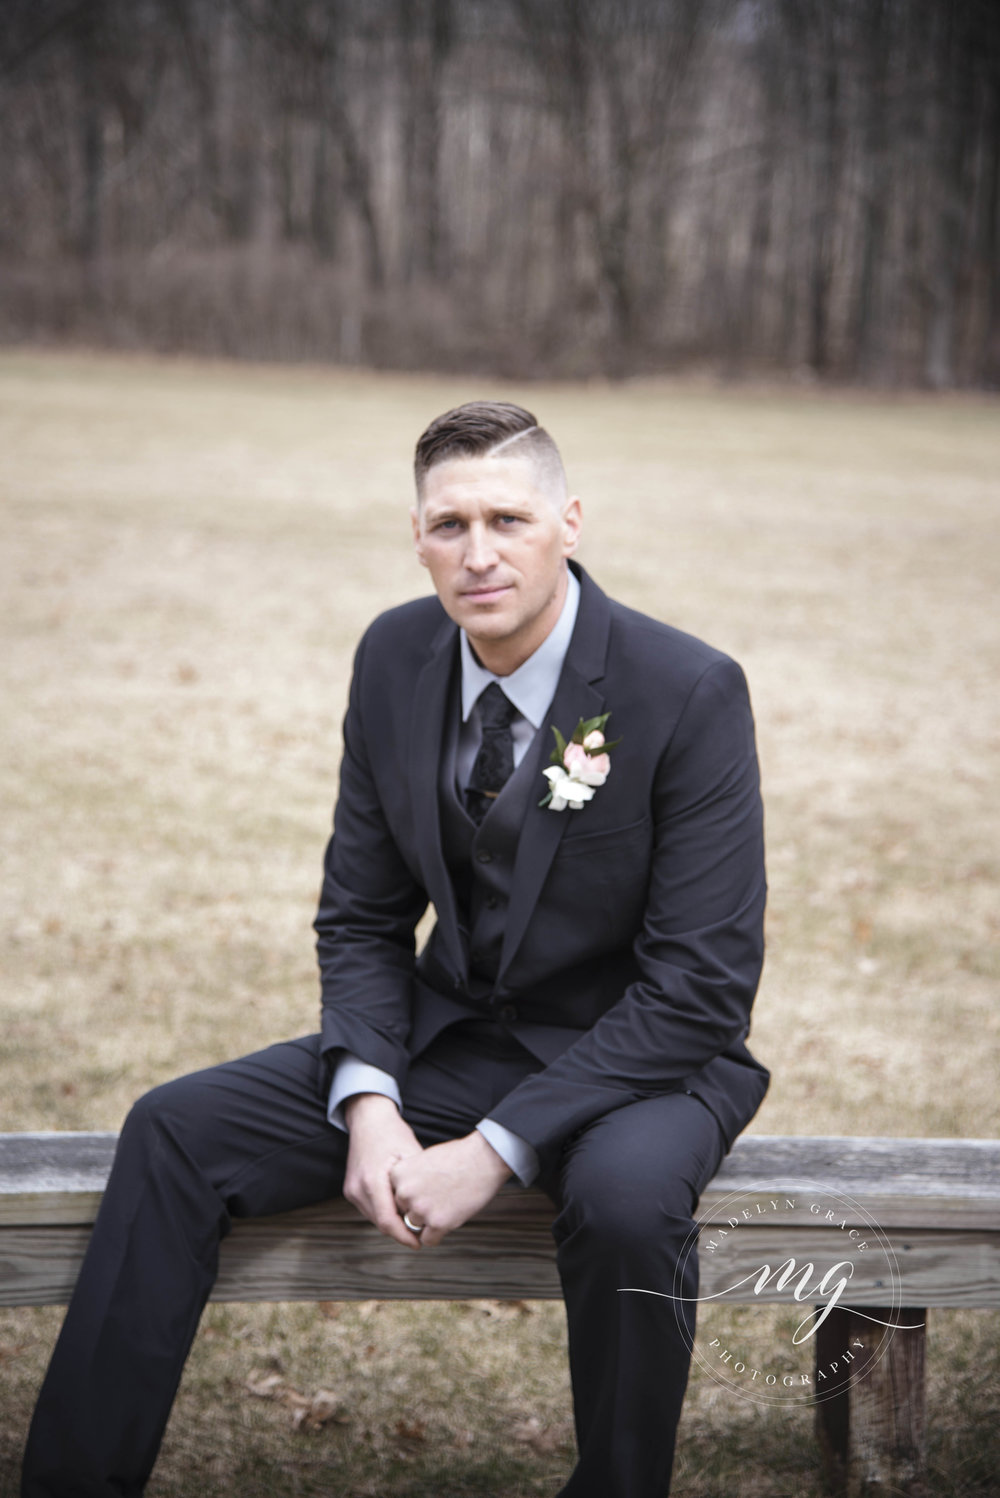 Michigan_wedding_photographer_grooms_portait_madelyn_grace_photography.jpg